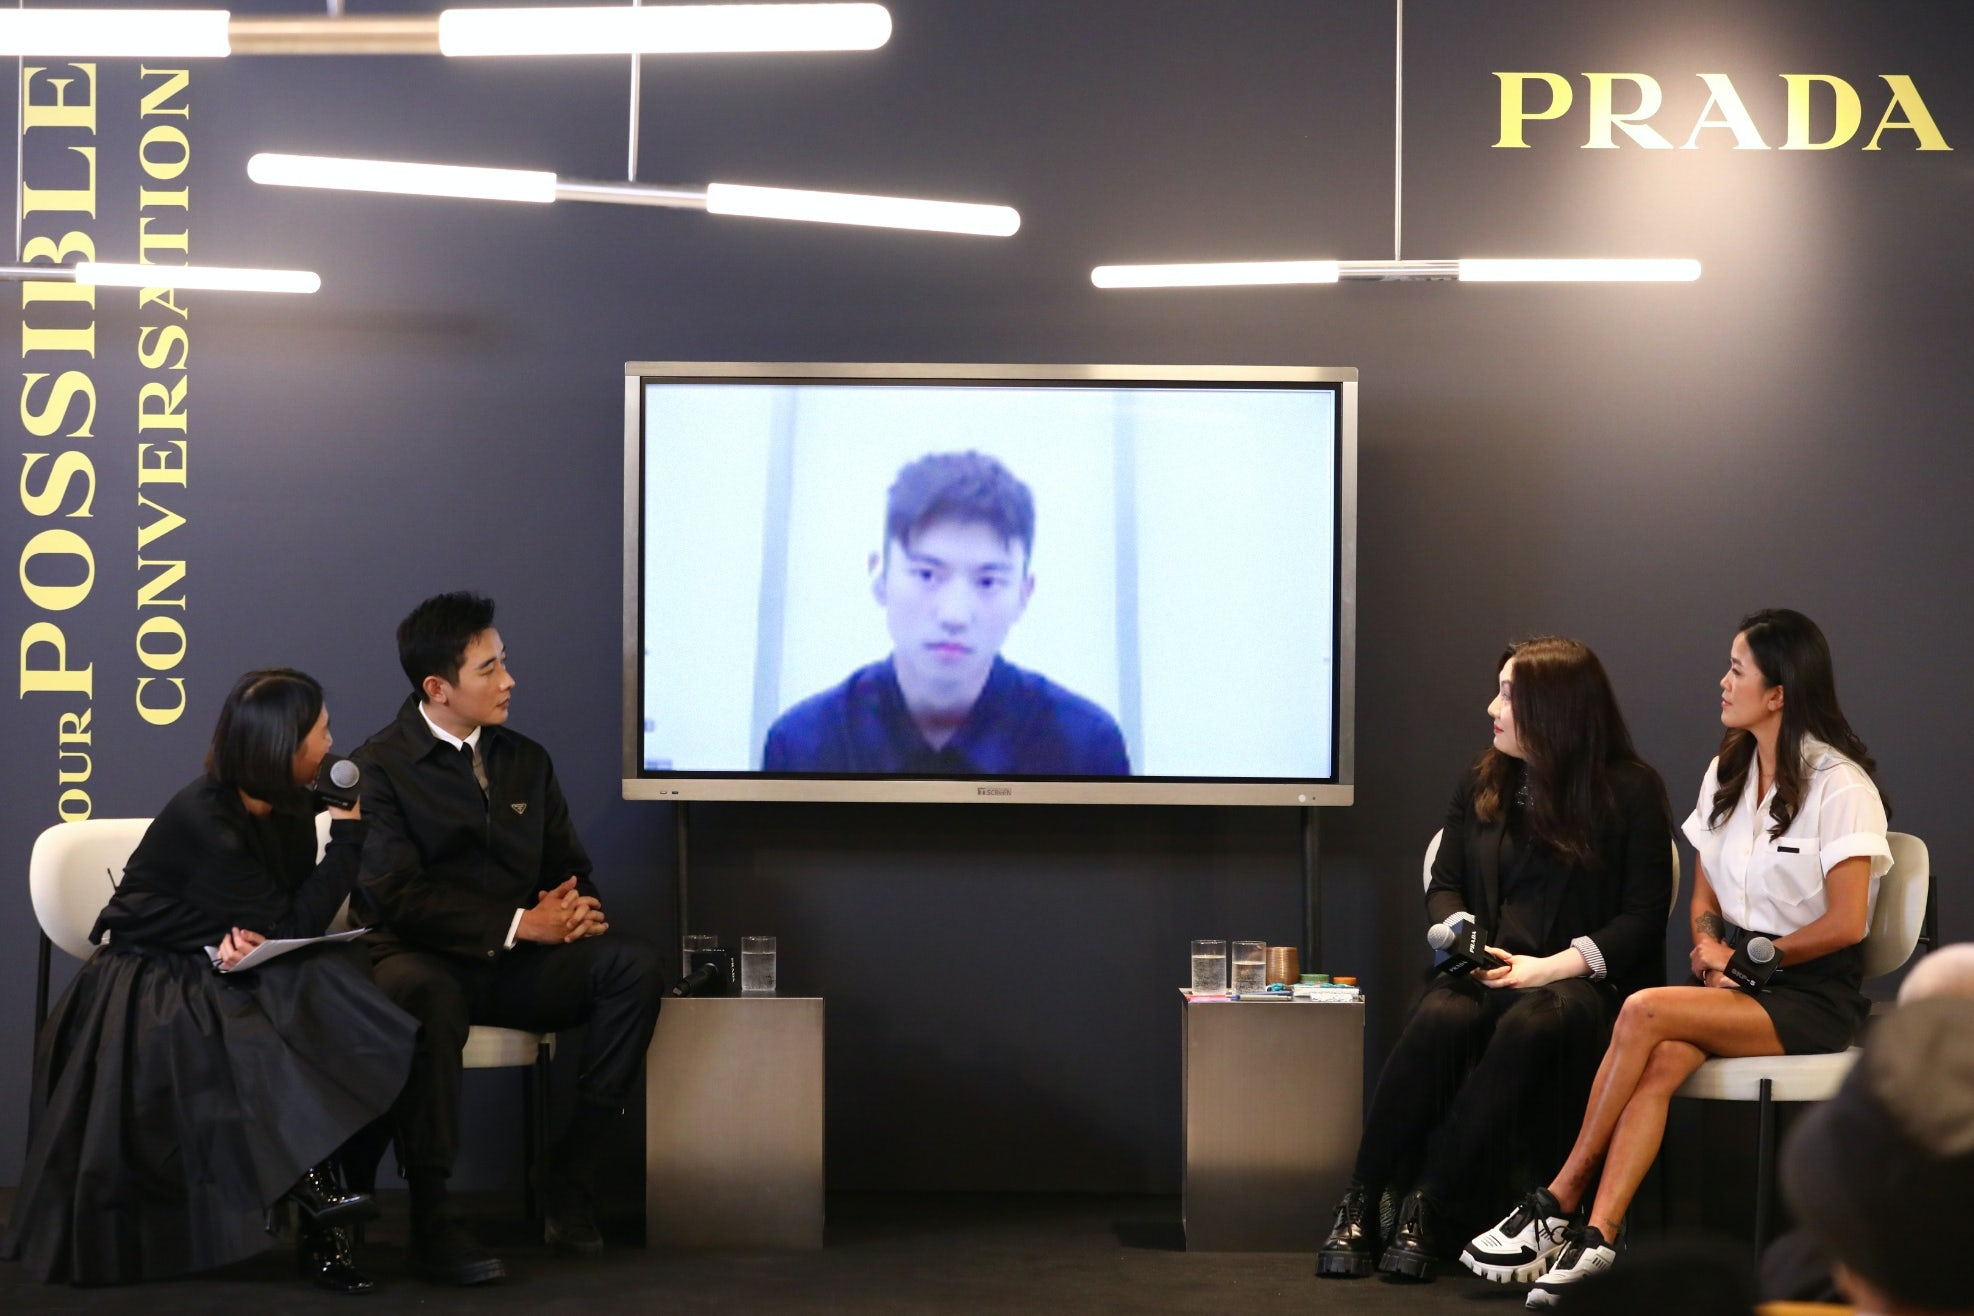 Surfer Monica Guo, actor Luo Jin, architect and professor Lyla Wu and swimmer Ning Zetao discuss ocean conservation at Prada's 'Possible Conversations' talk on December 9, 2020. Prada.